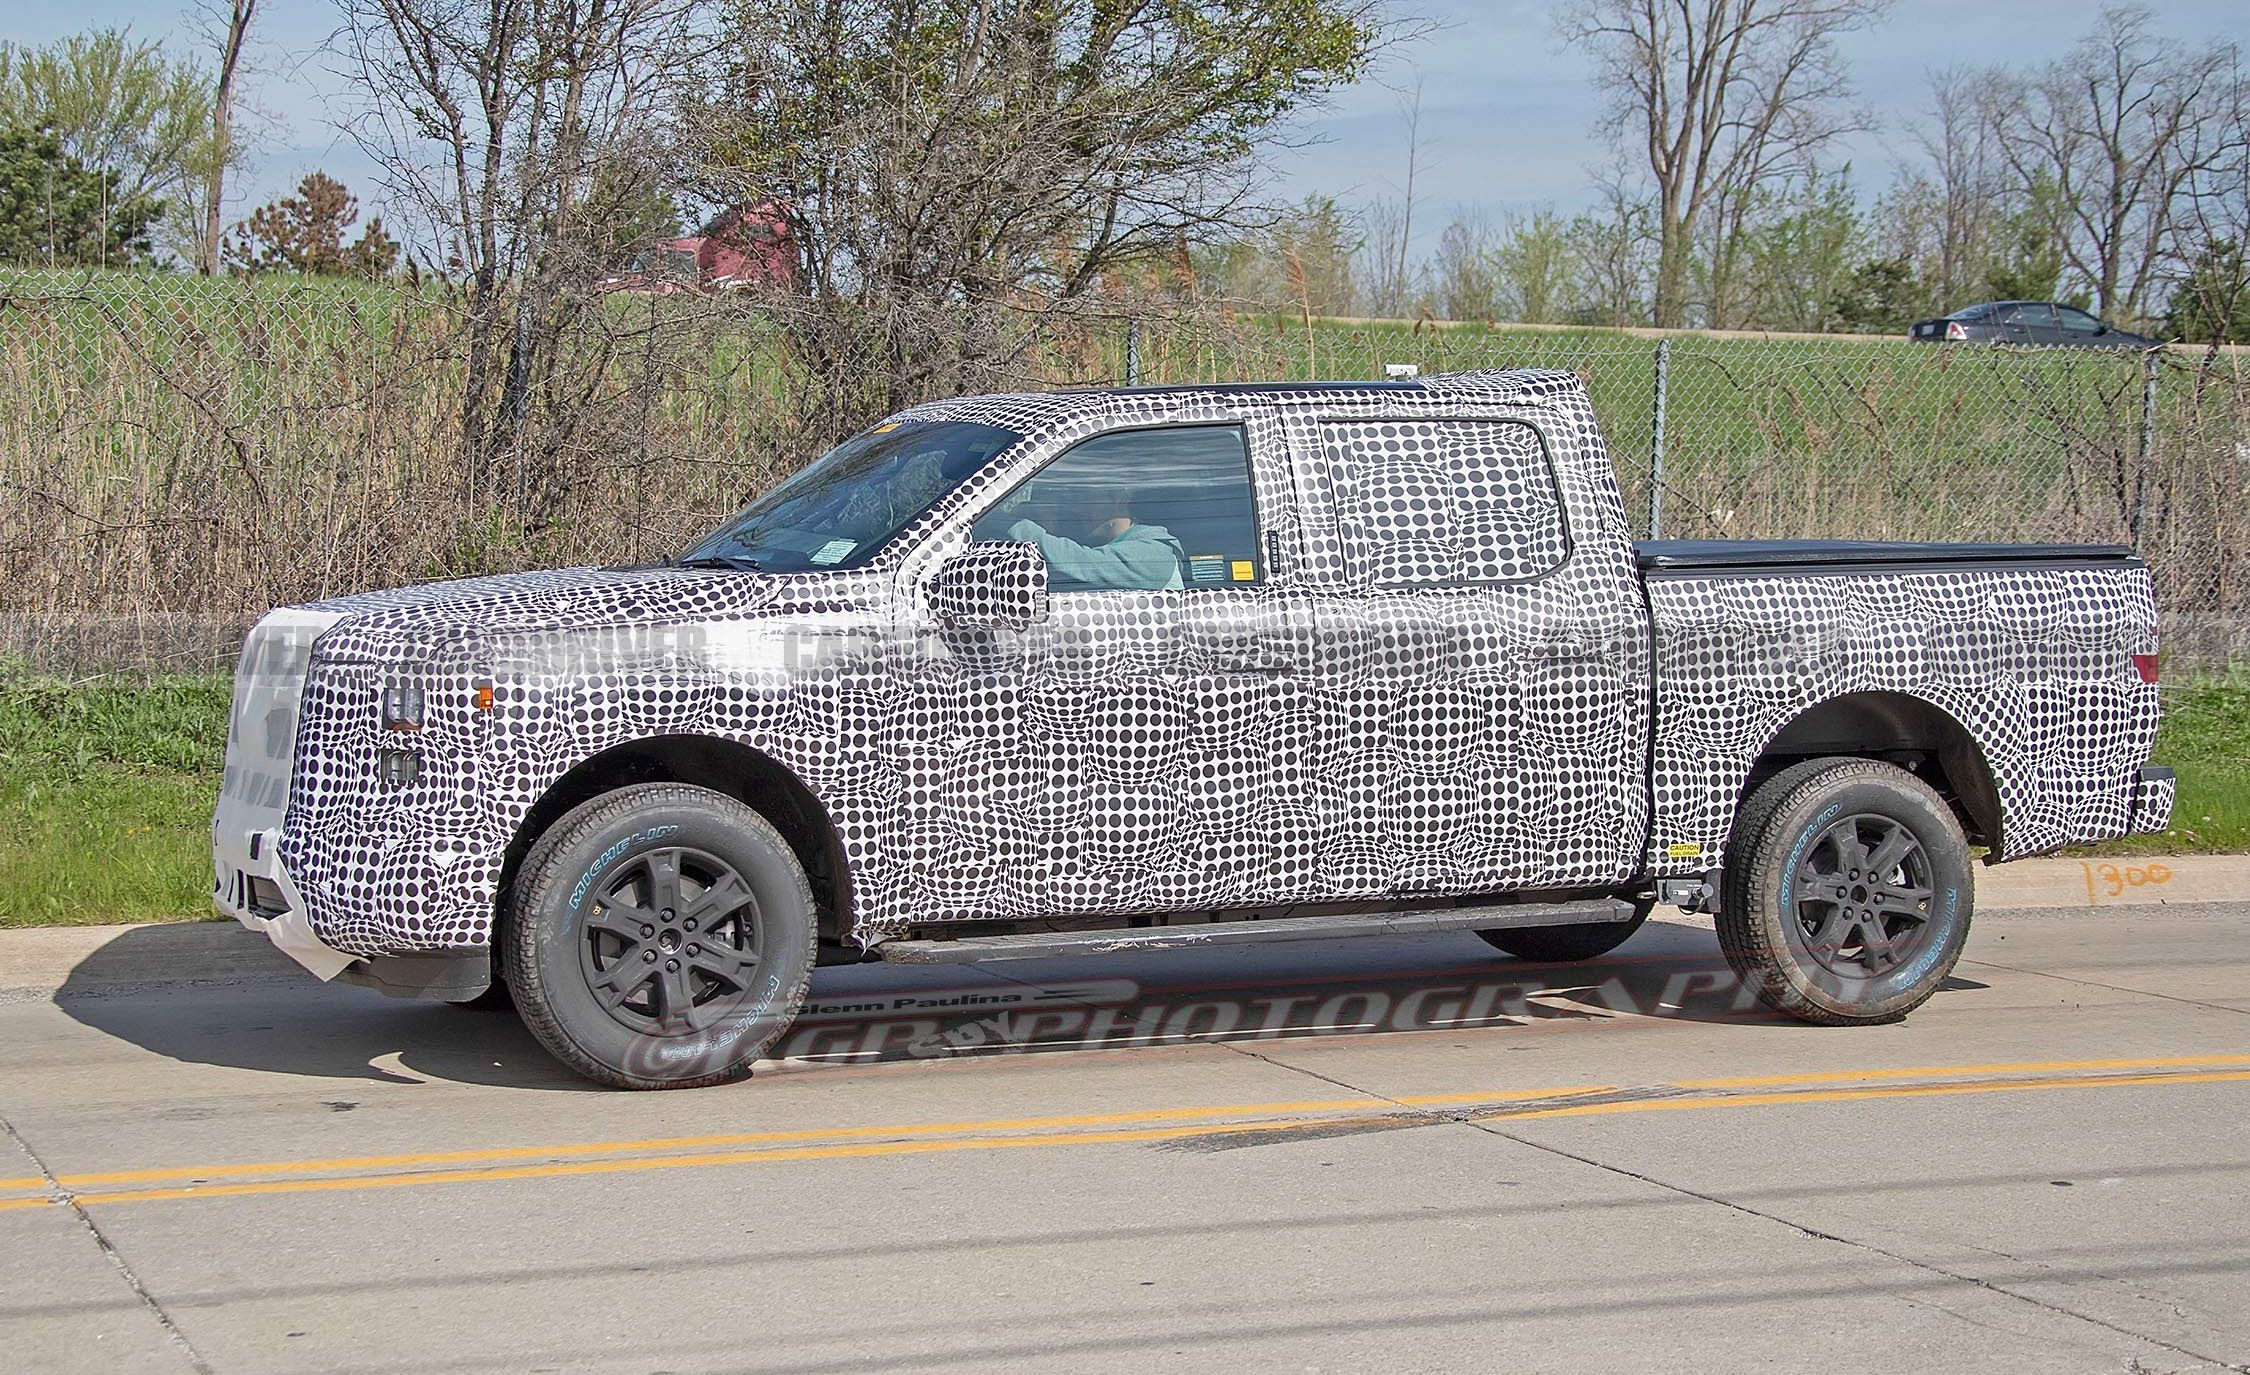 The 2021 ford f 150 spied testing looks pretty evolutionary